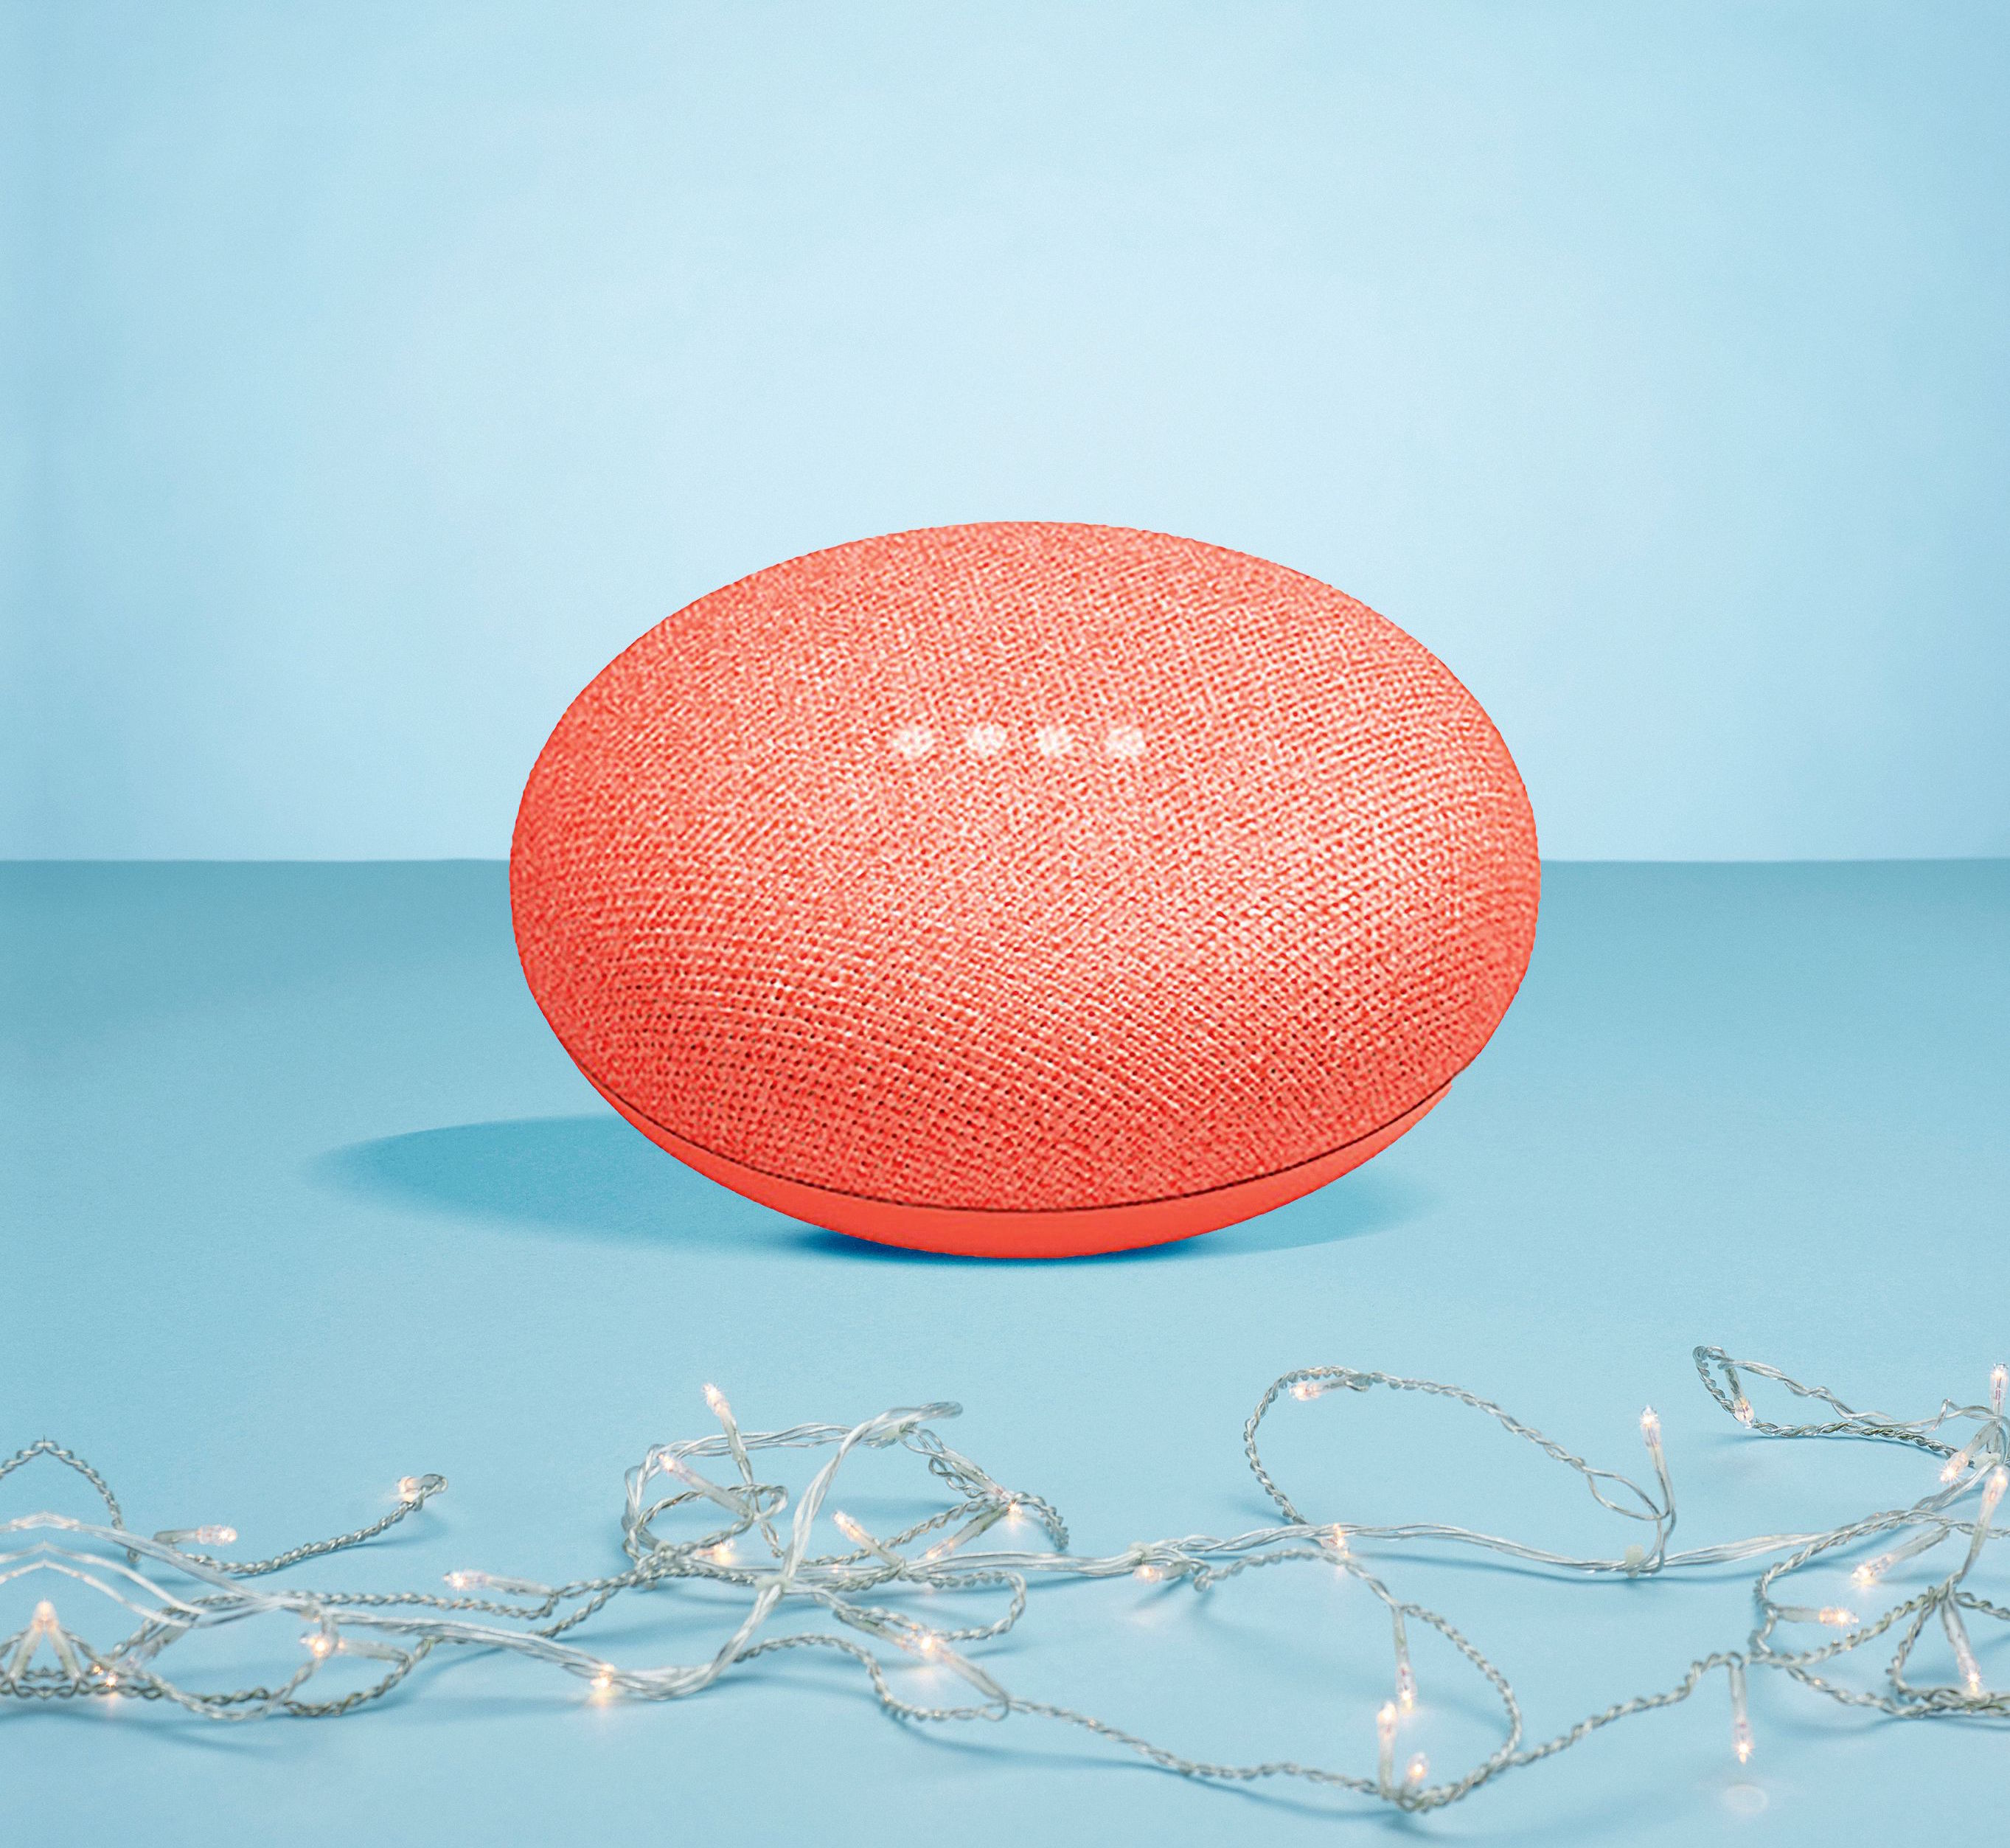 , Spotify offering free Google Home Minis for new and existing users